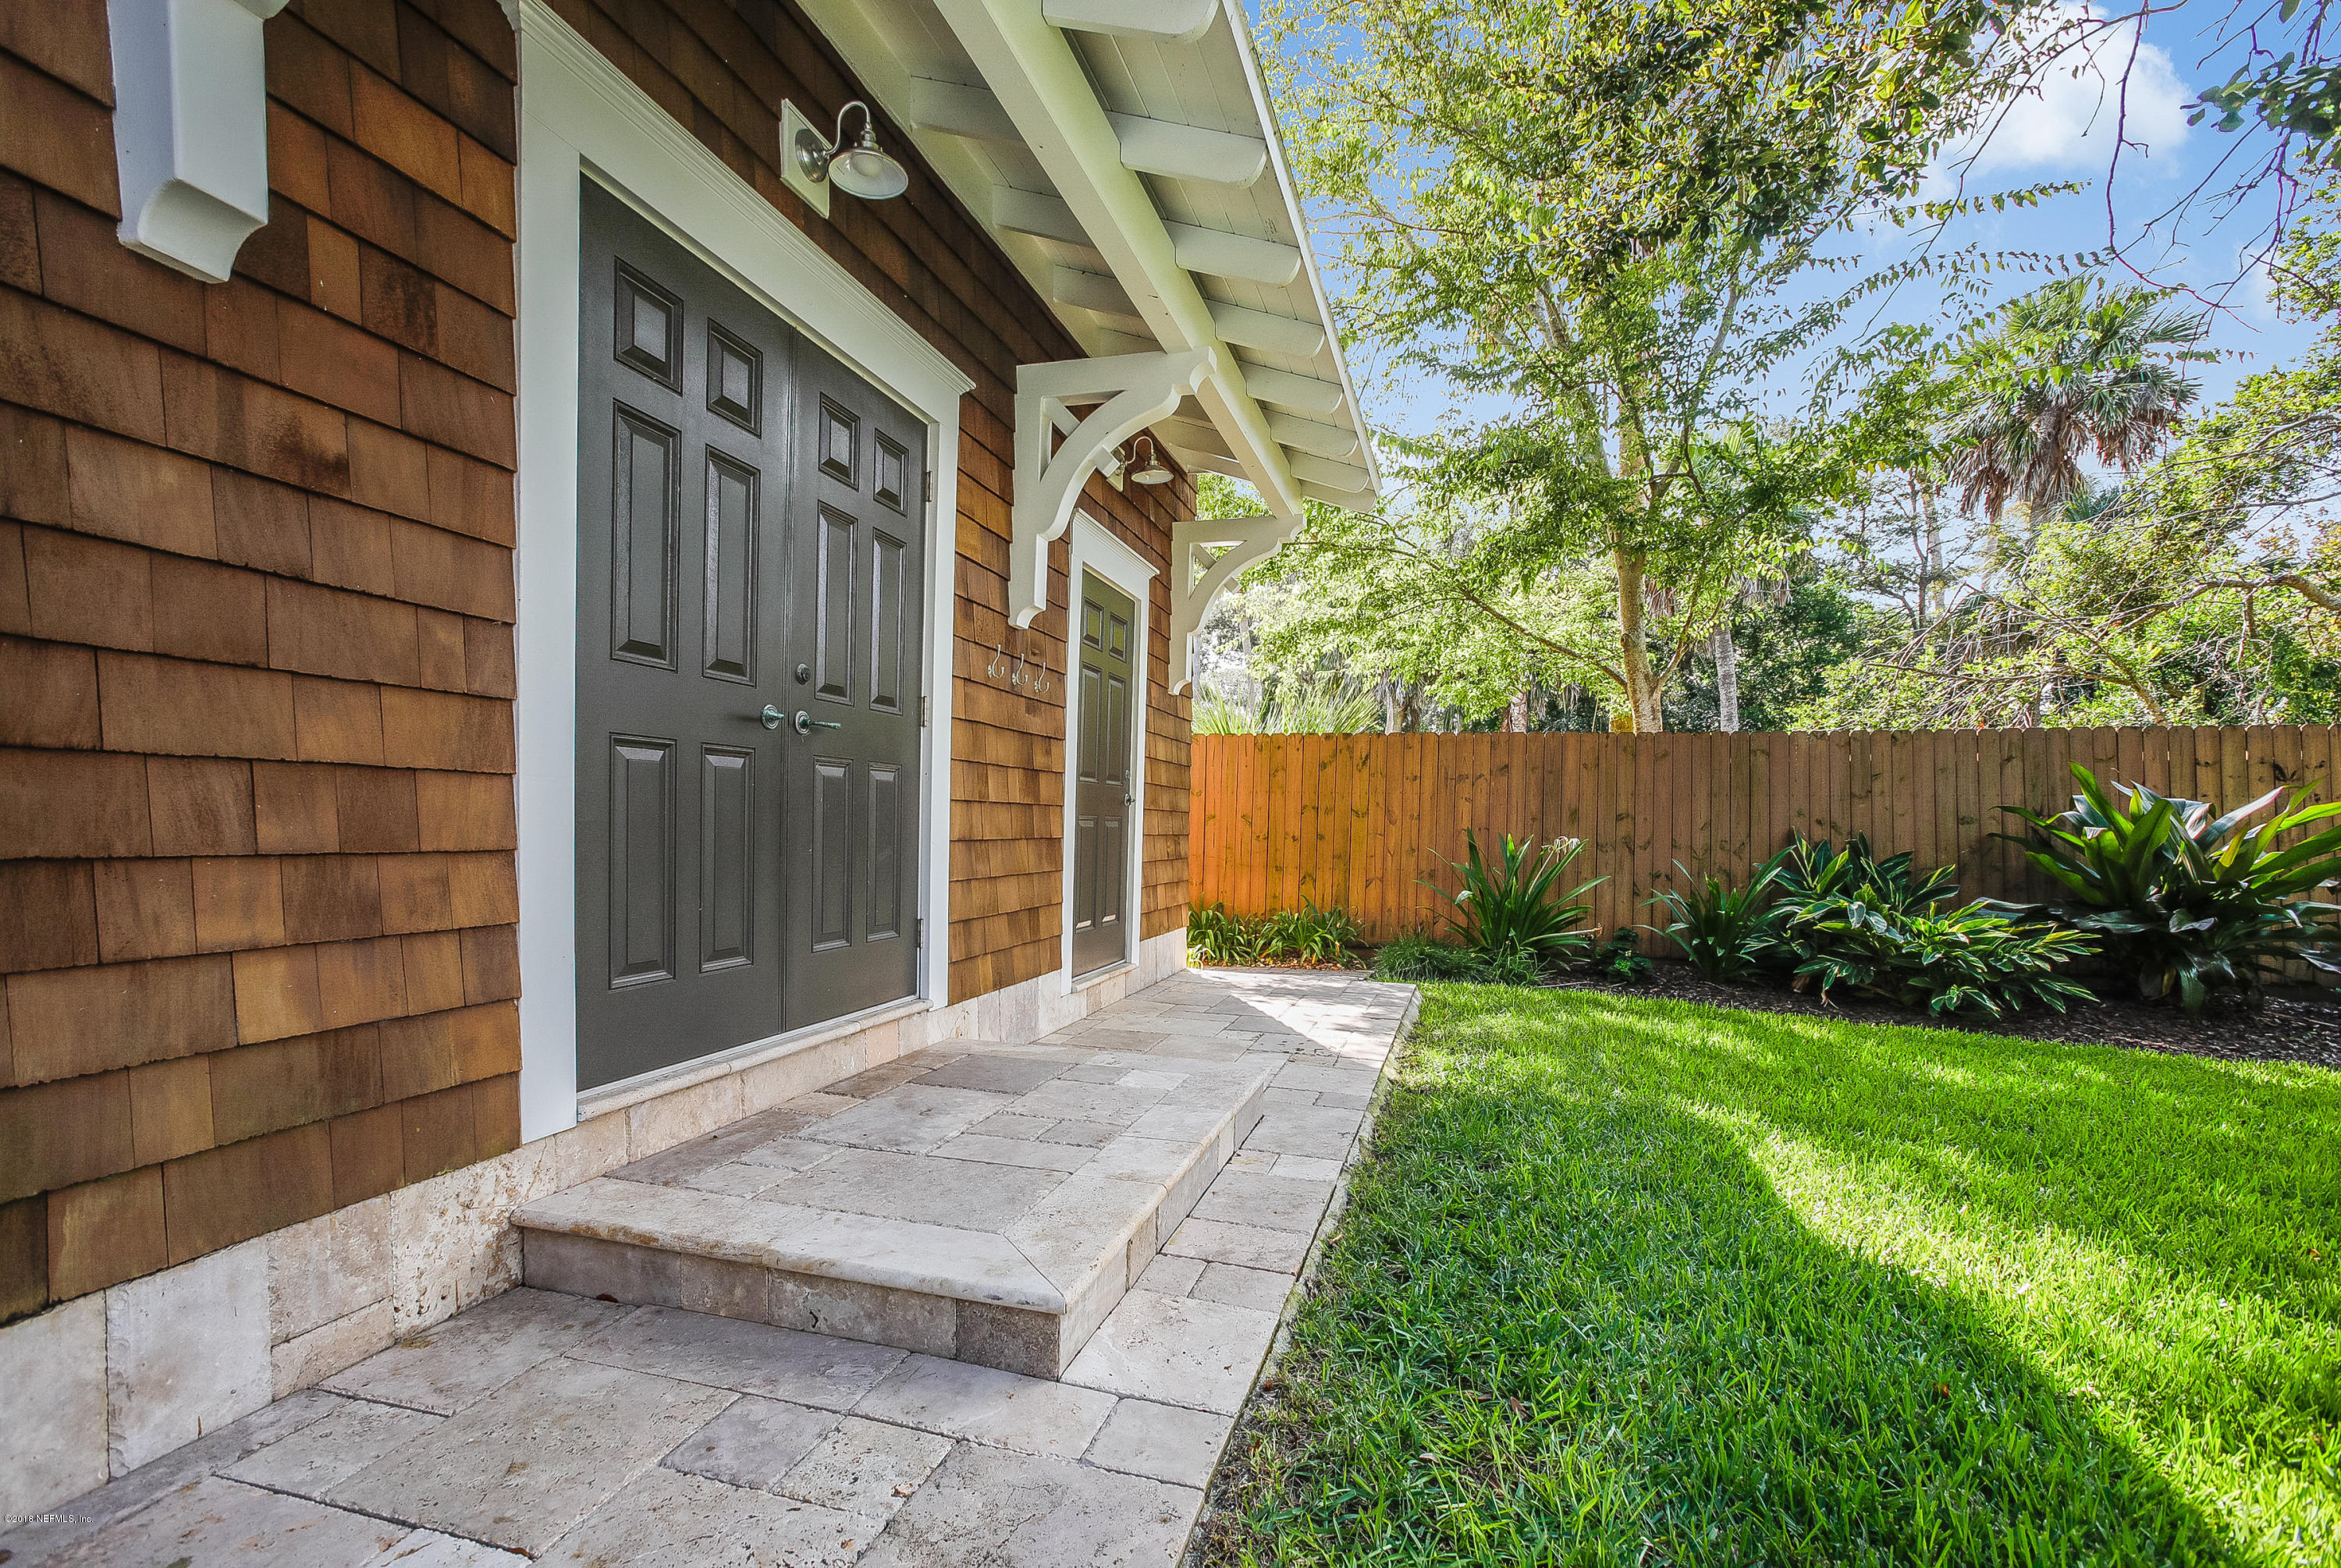 329 11TH, ATLANTIC BEACH, FLORIDA 32233, 6 Bedrooms Bedrooms, ,5 BathroomsBathrooms,Residential - single family,For sale,11TH,958908